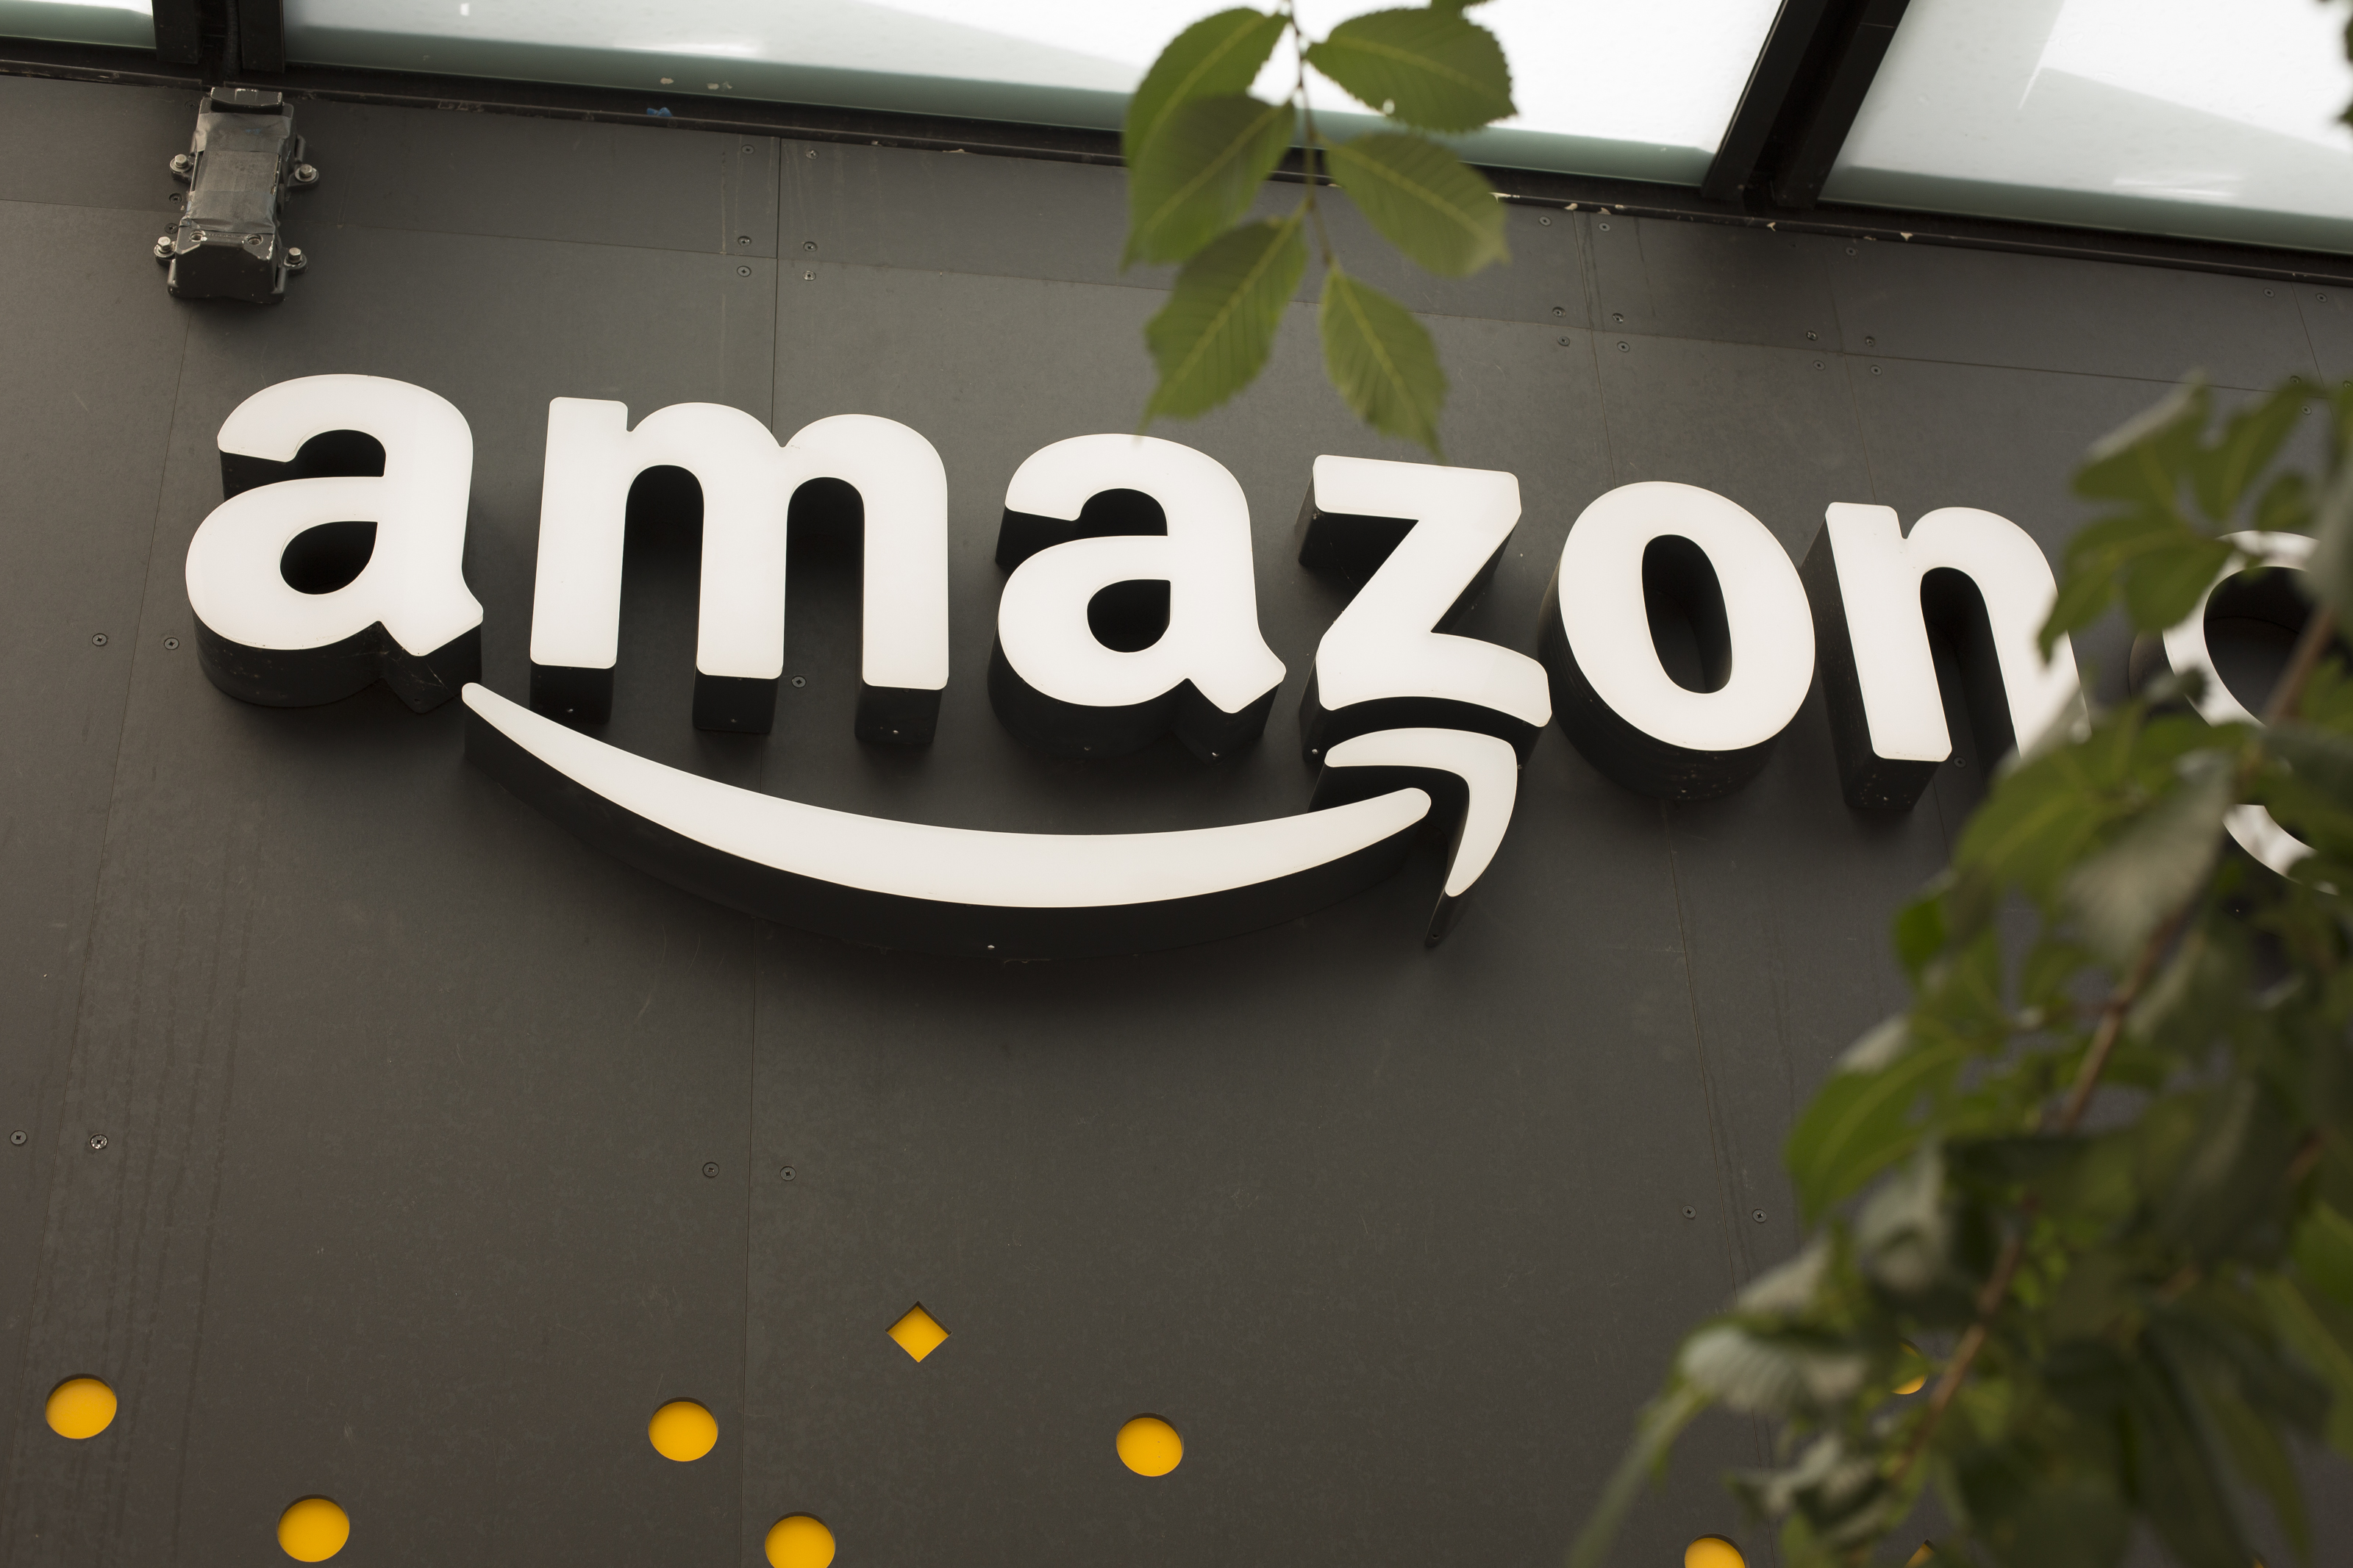 Amazon looking to work directly with health plans and employers to sell prescription drugs, court documents reveal